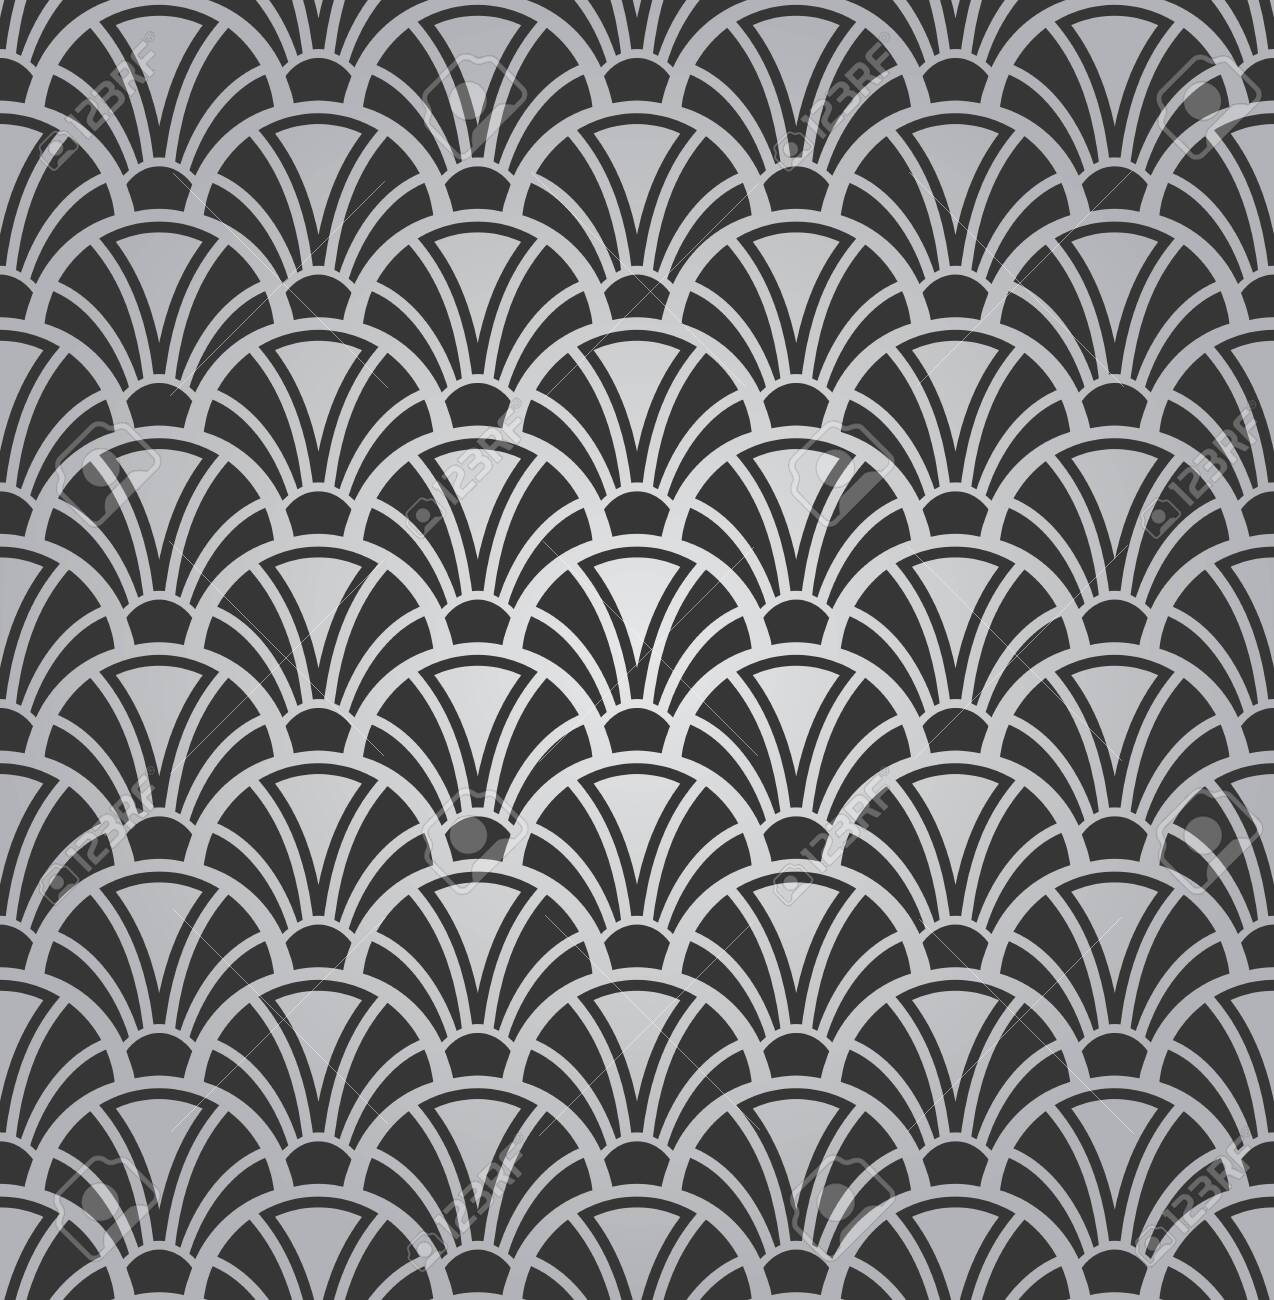 Black And White Simple Arc Shapes Pattern Modern Wallpaper Design